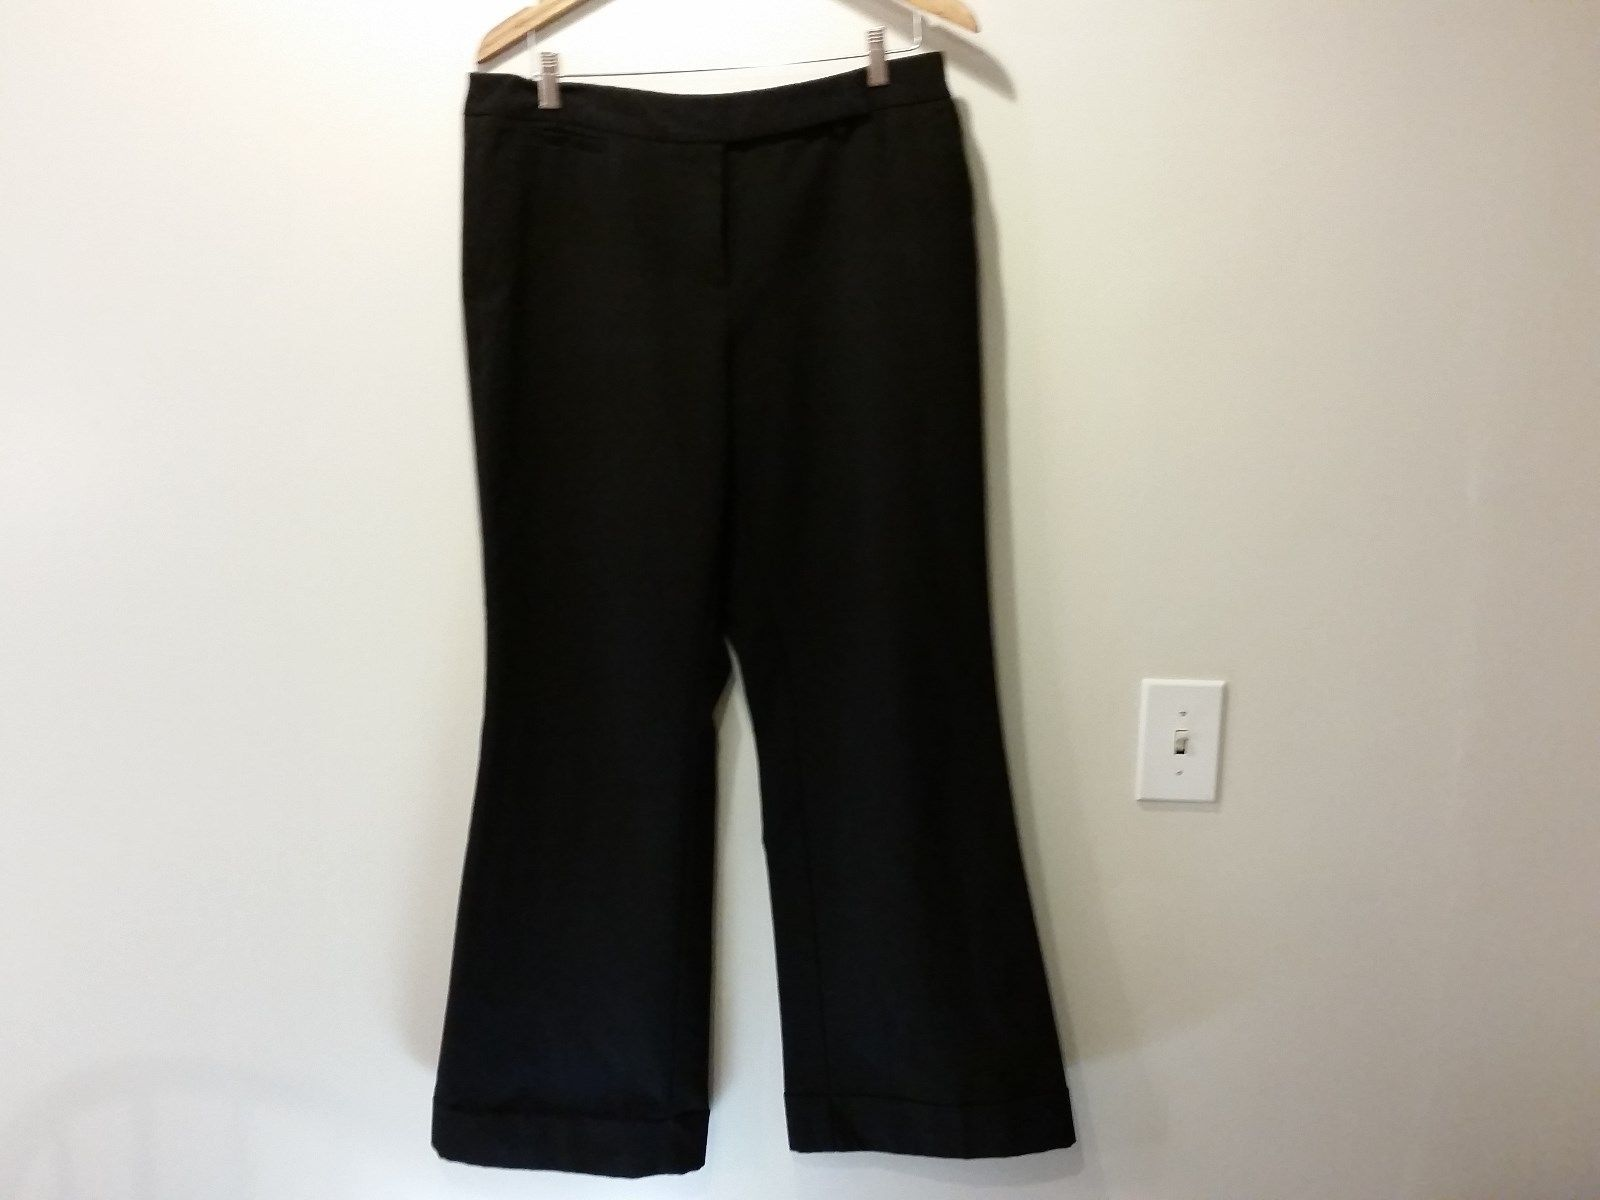 Size 12 Average New York and Company Black Stretch Dress Pants